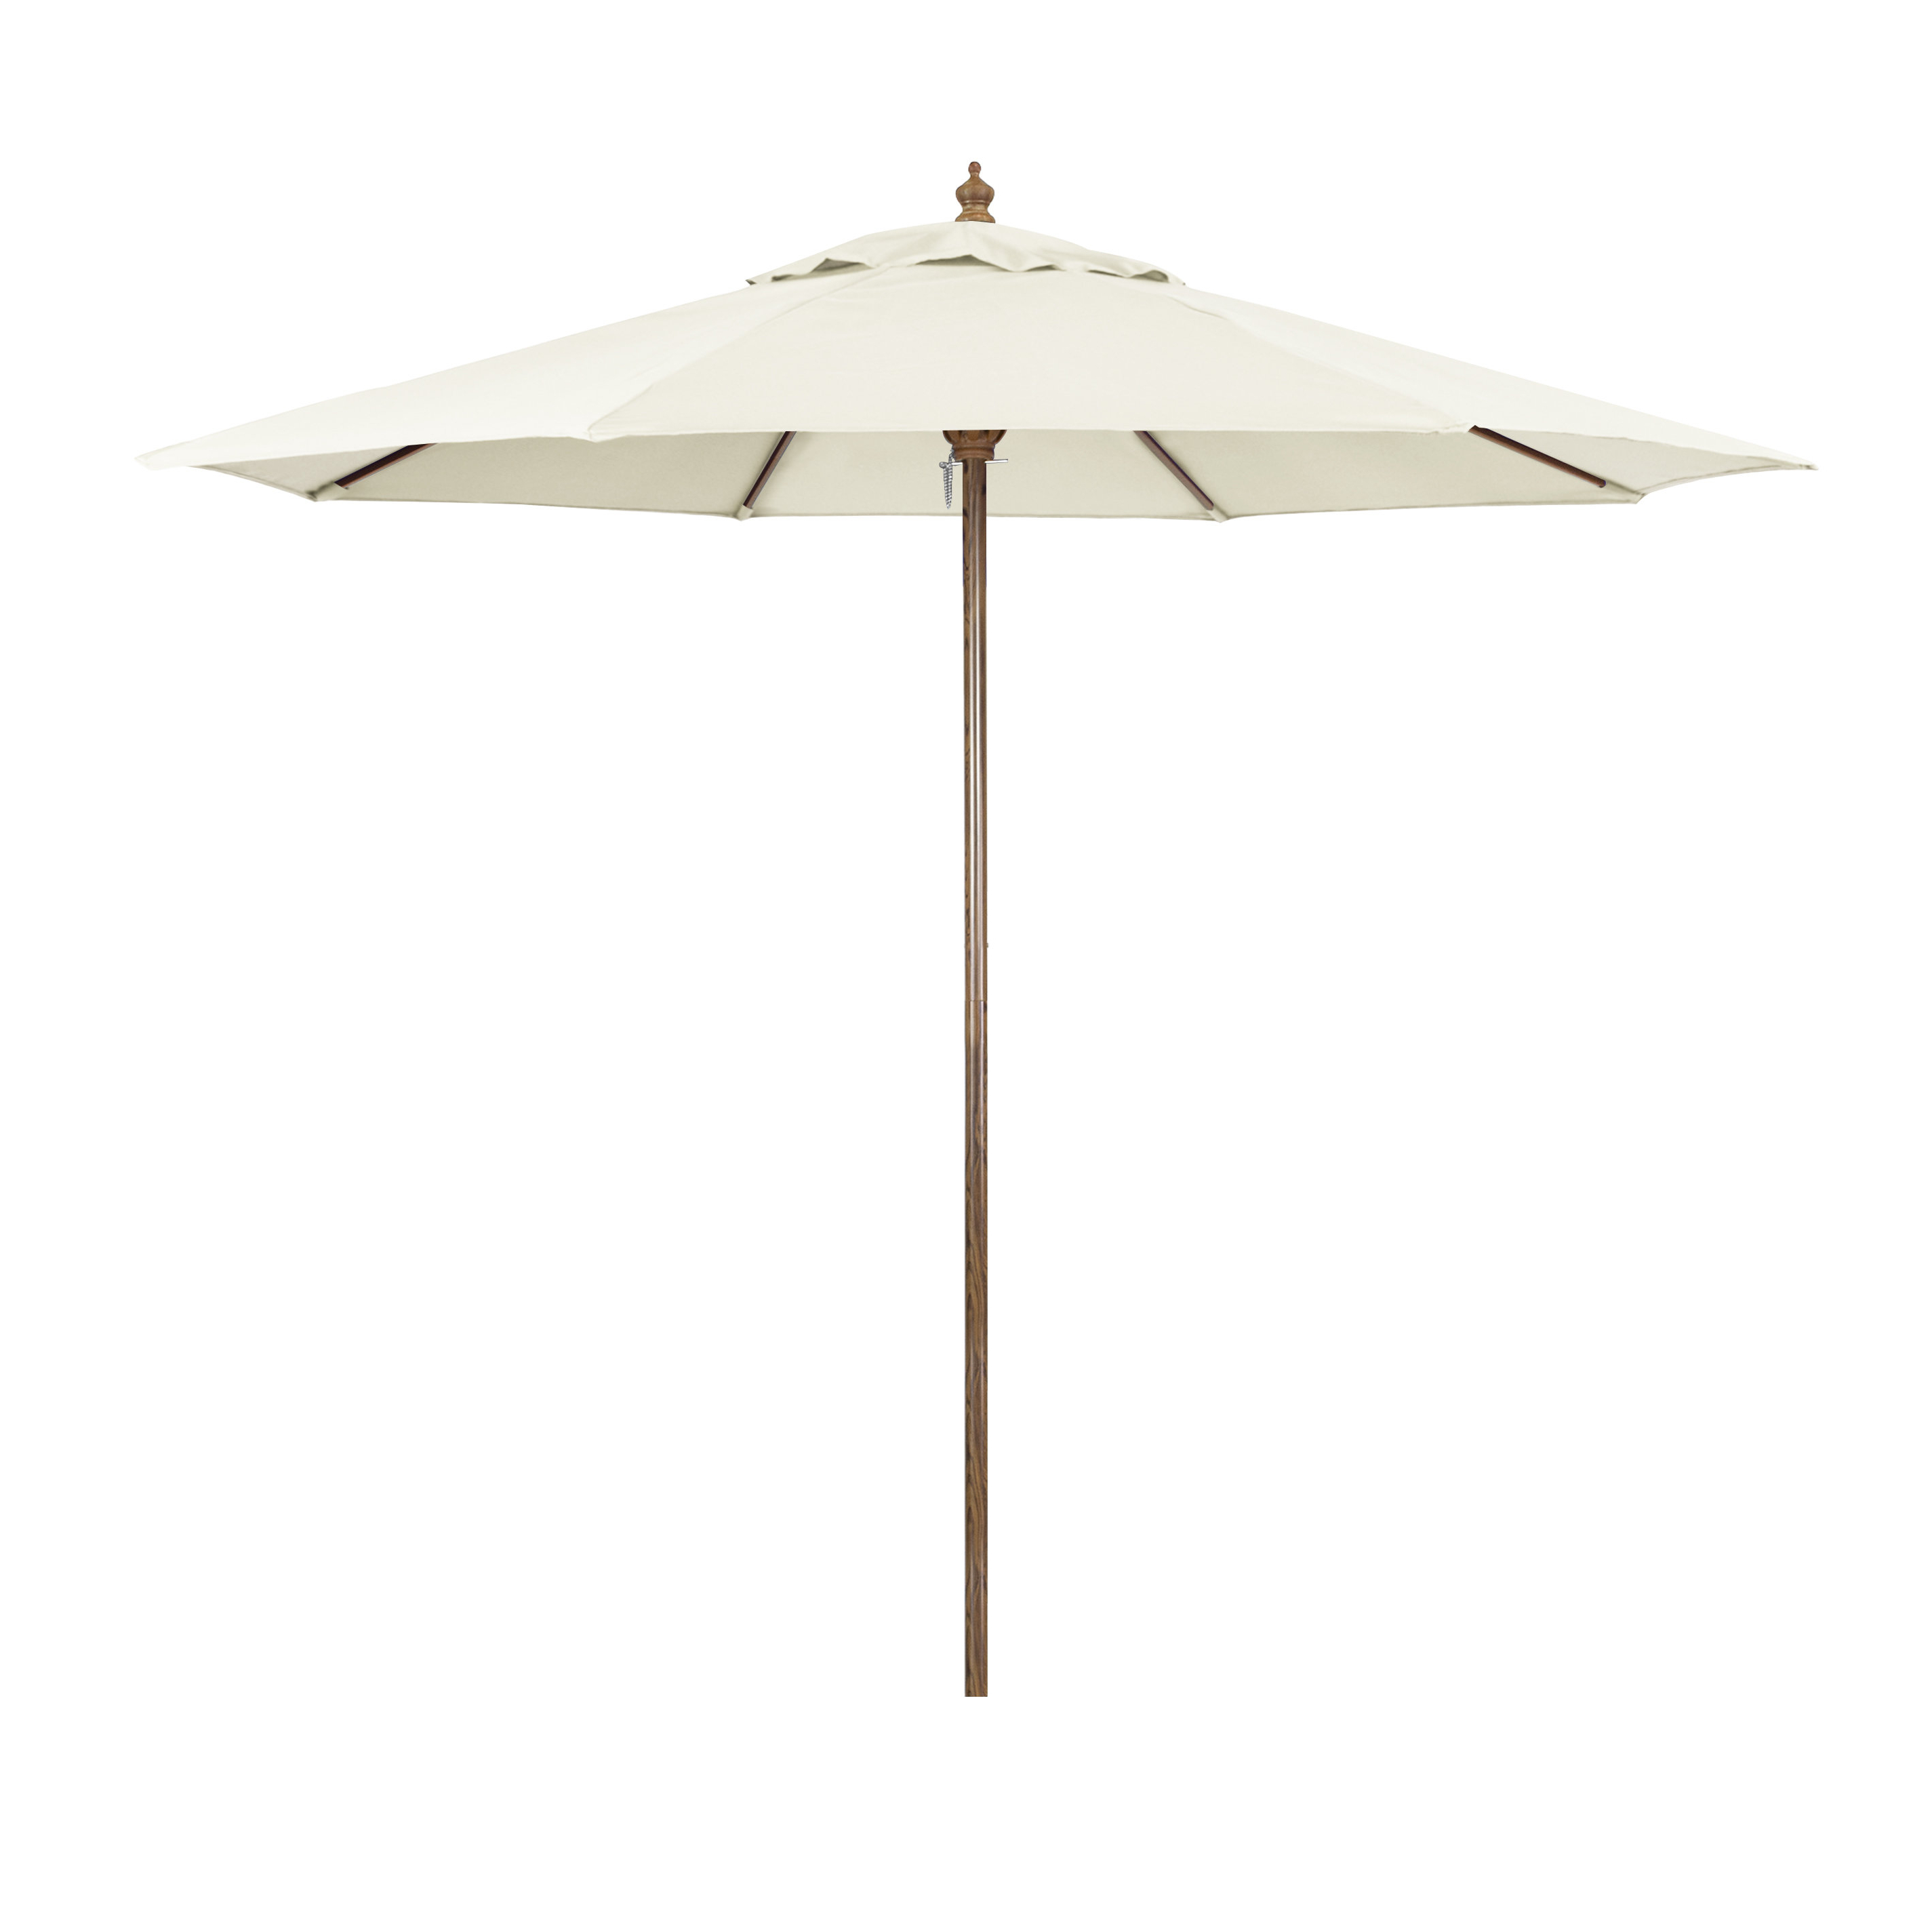 2020 Ryant 9' Market Umbrella For Delaplaine Market Umbrellas (View 4 of 20)